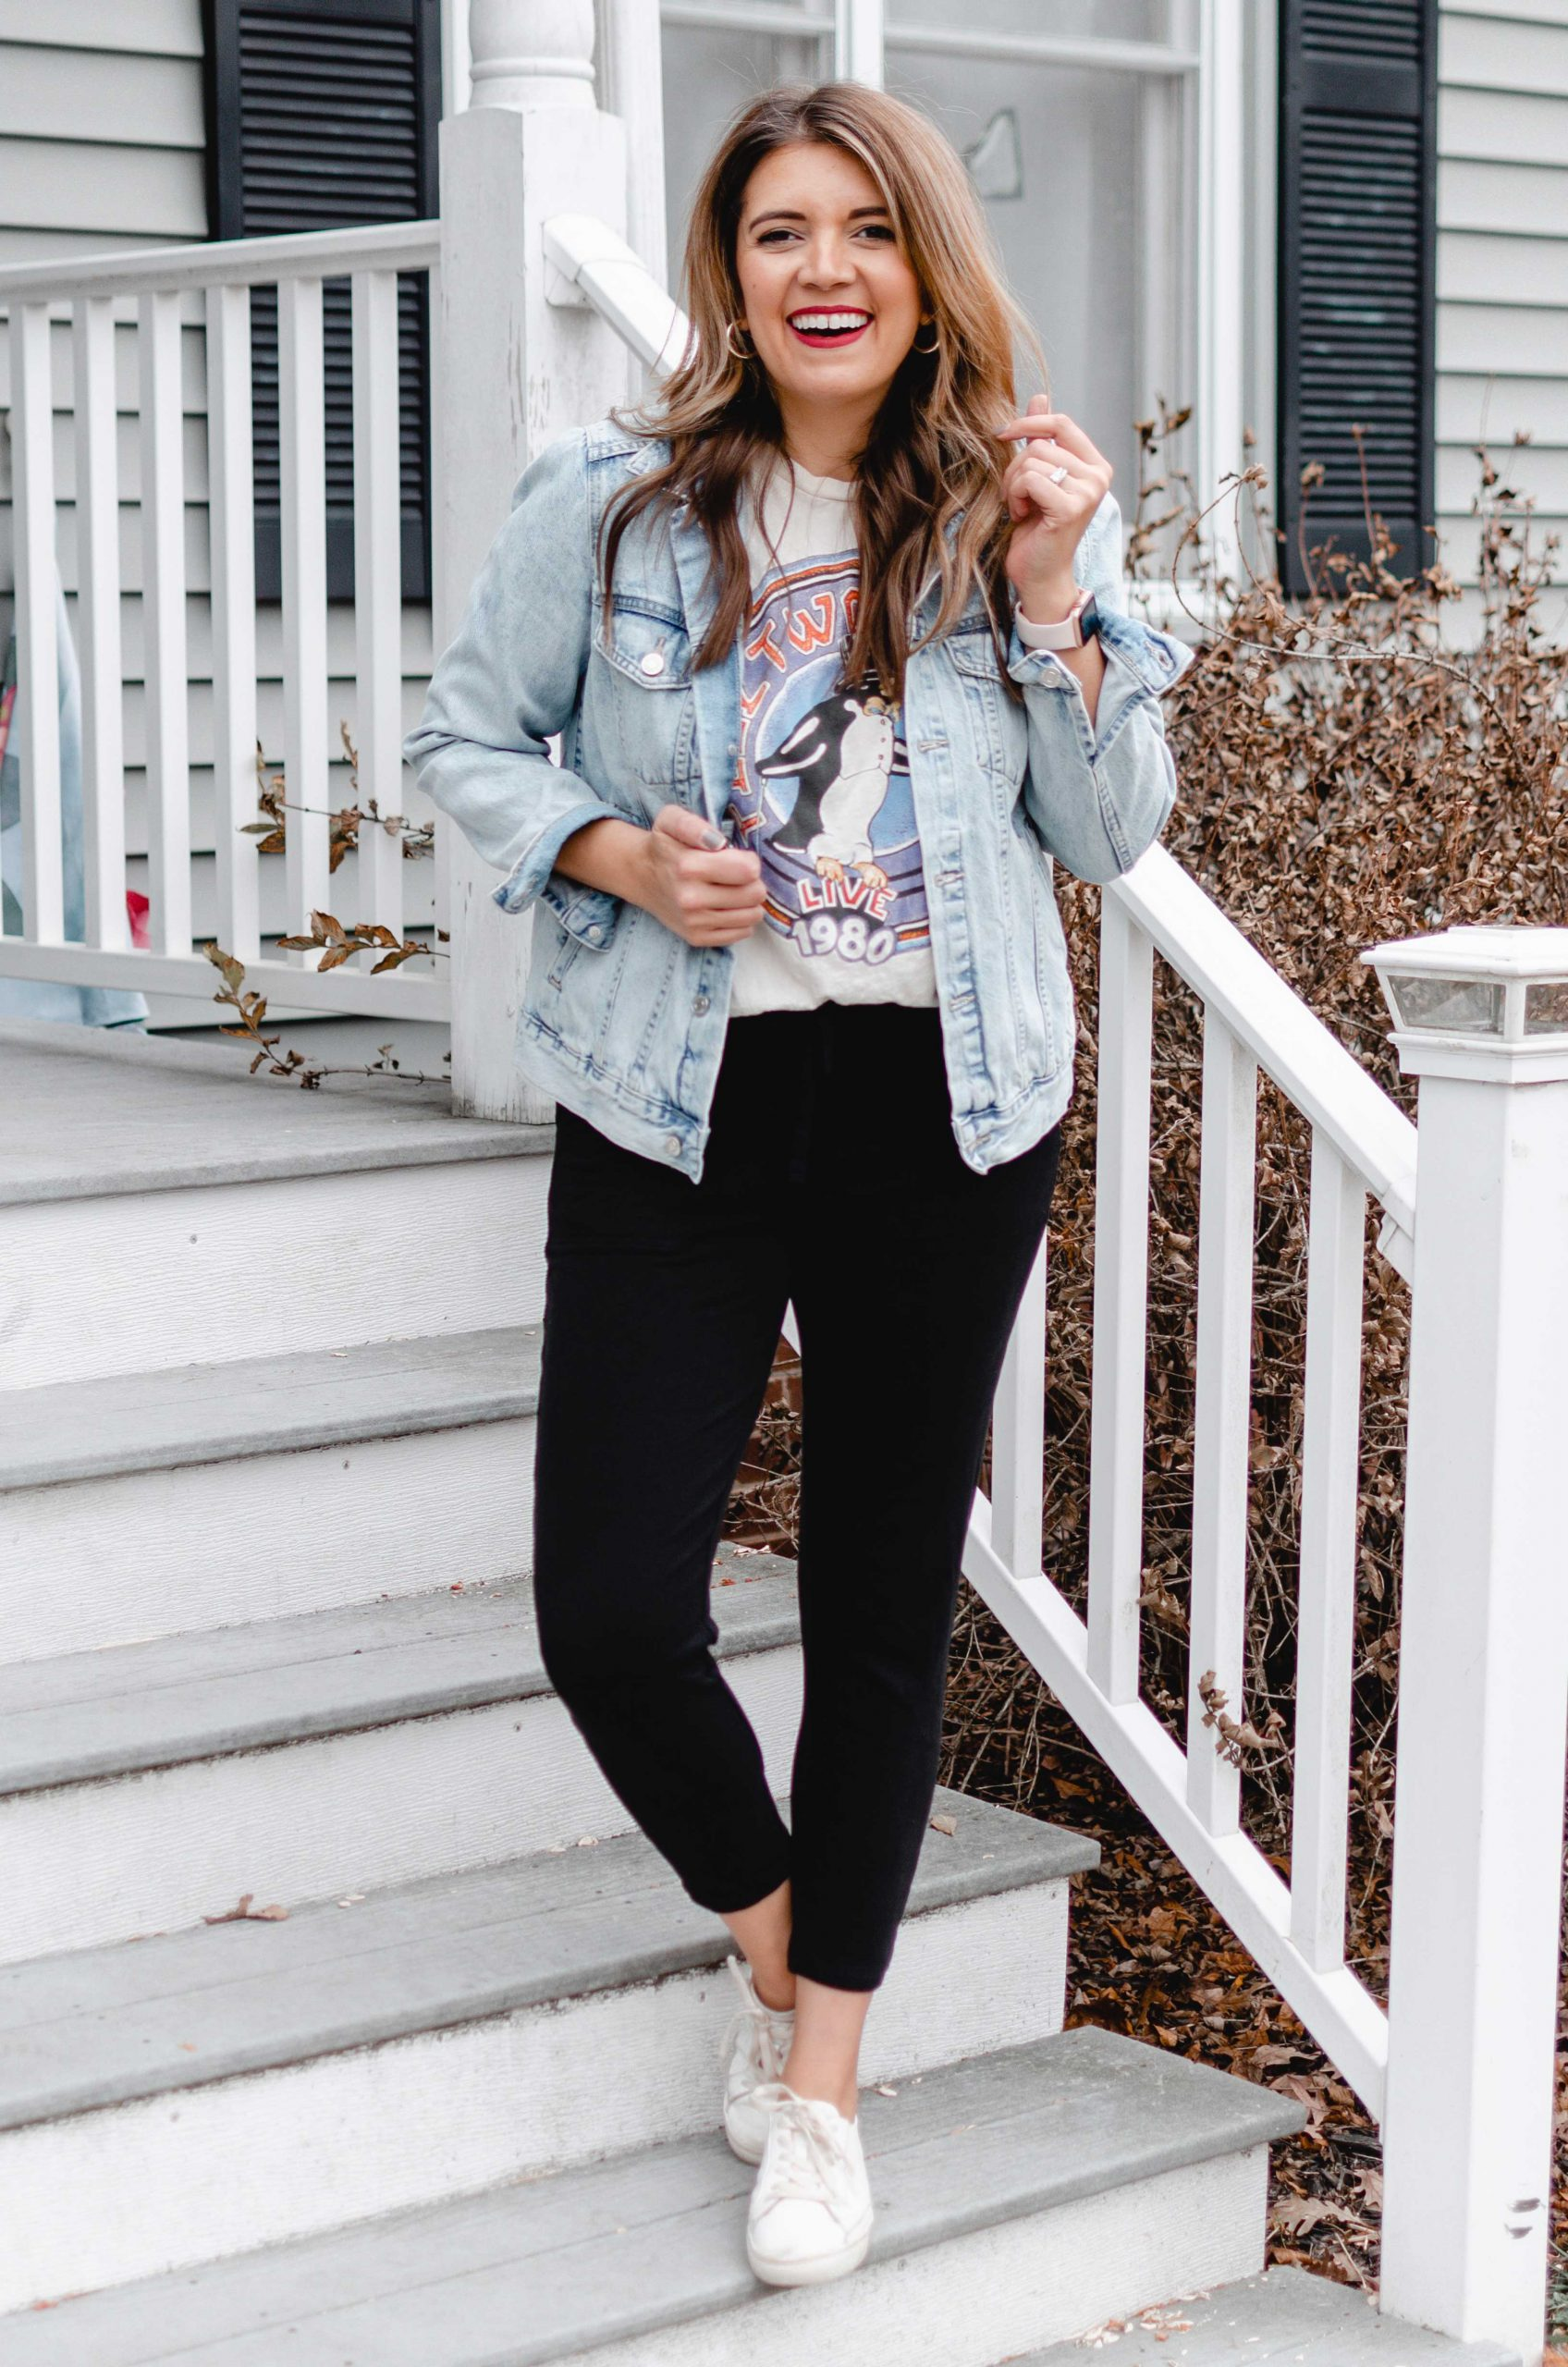 Virginia blogger, Lauren Dix, shares four ways to wear graphic tees for winter!